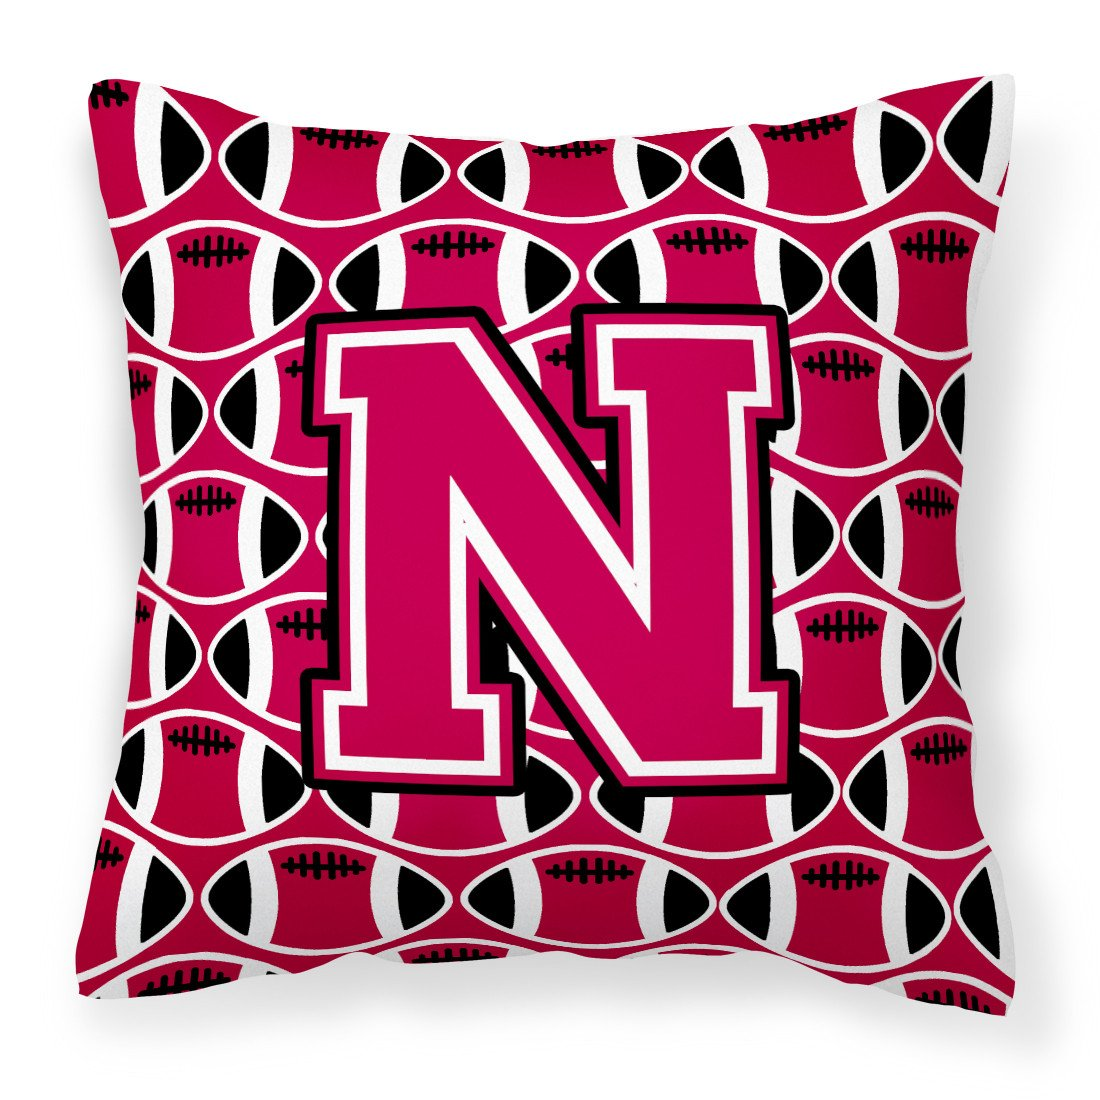 Letter N Football Crimson and White Fabric Decorative Pillow CJ1079-NPW1414 by Caroline's Treasures